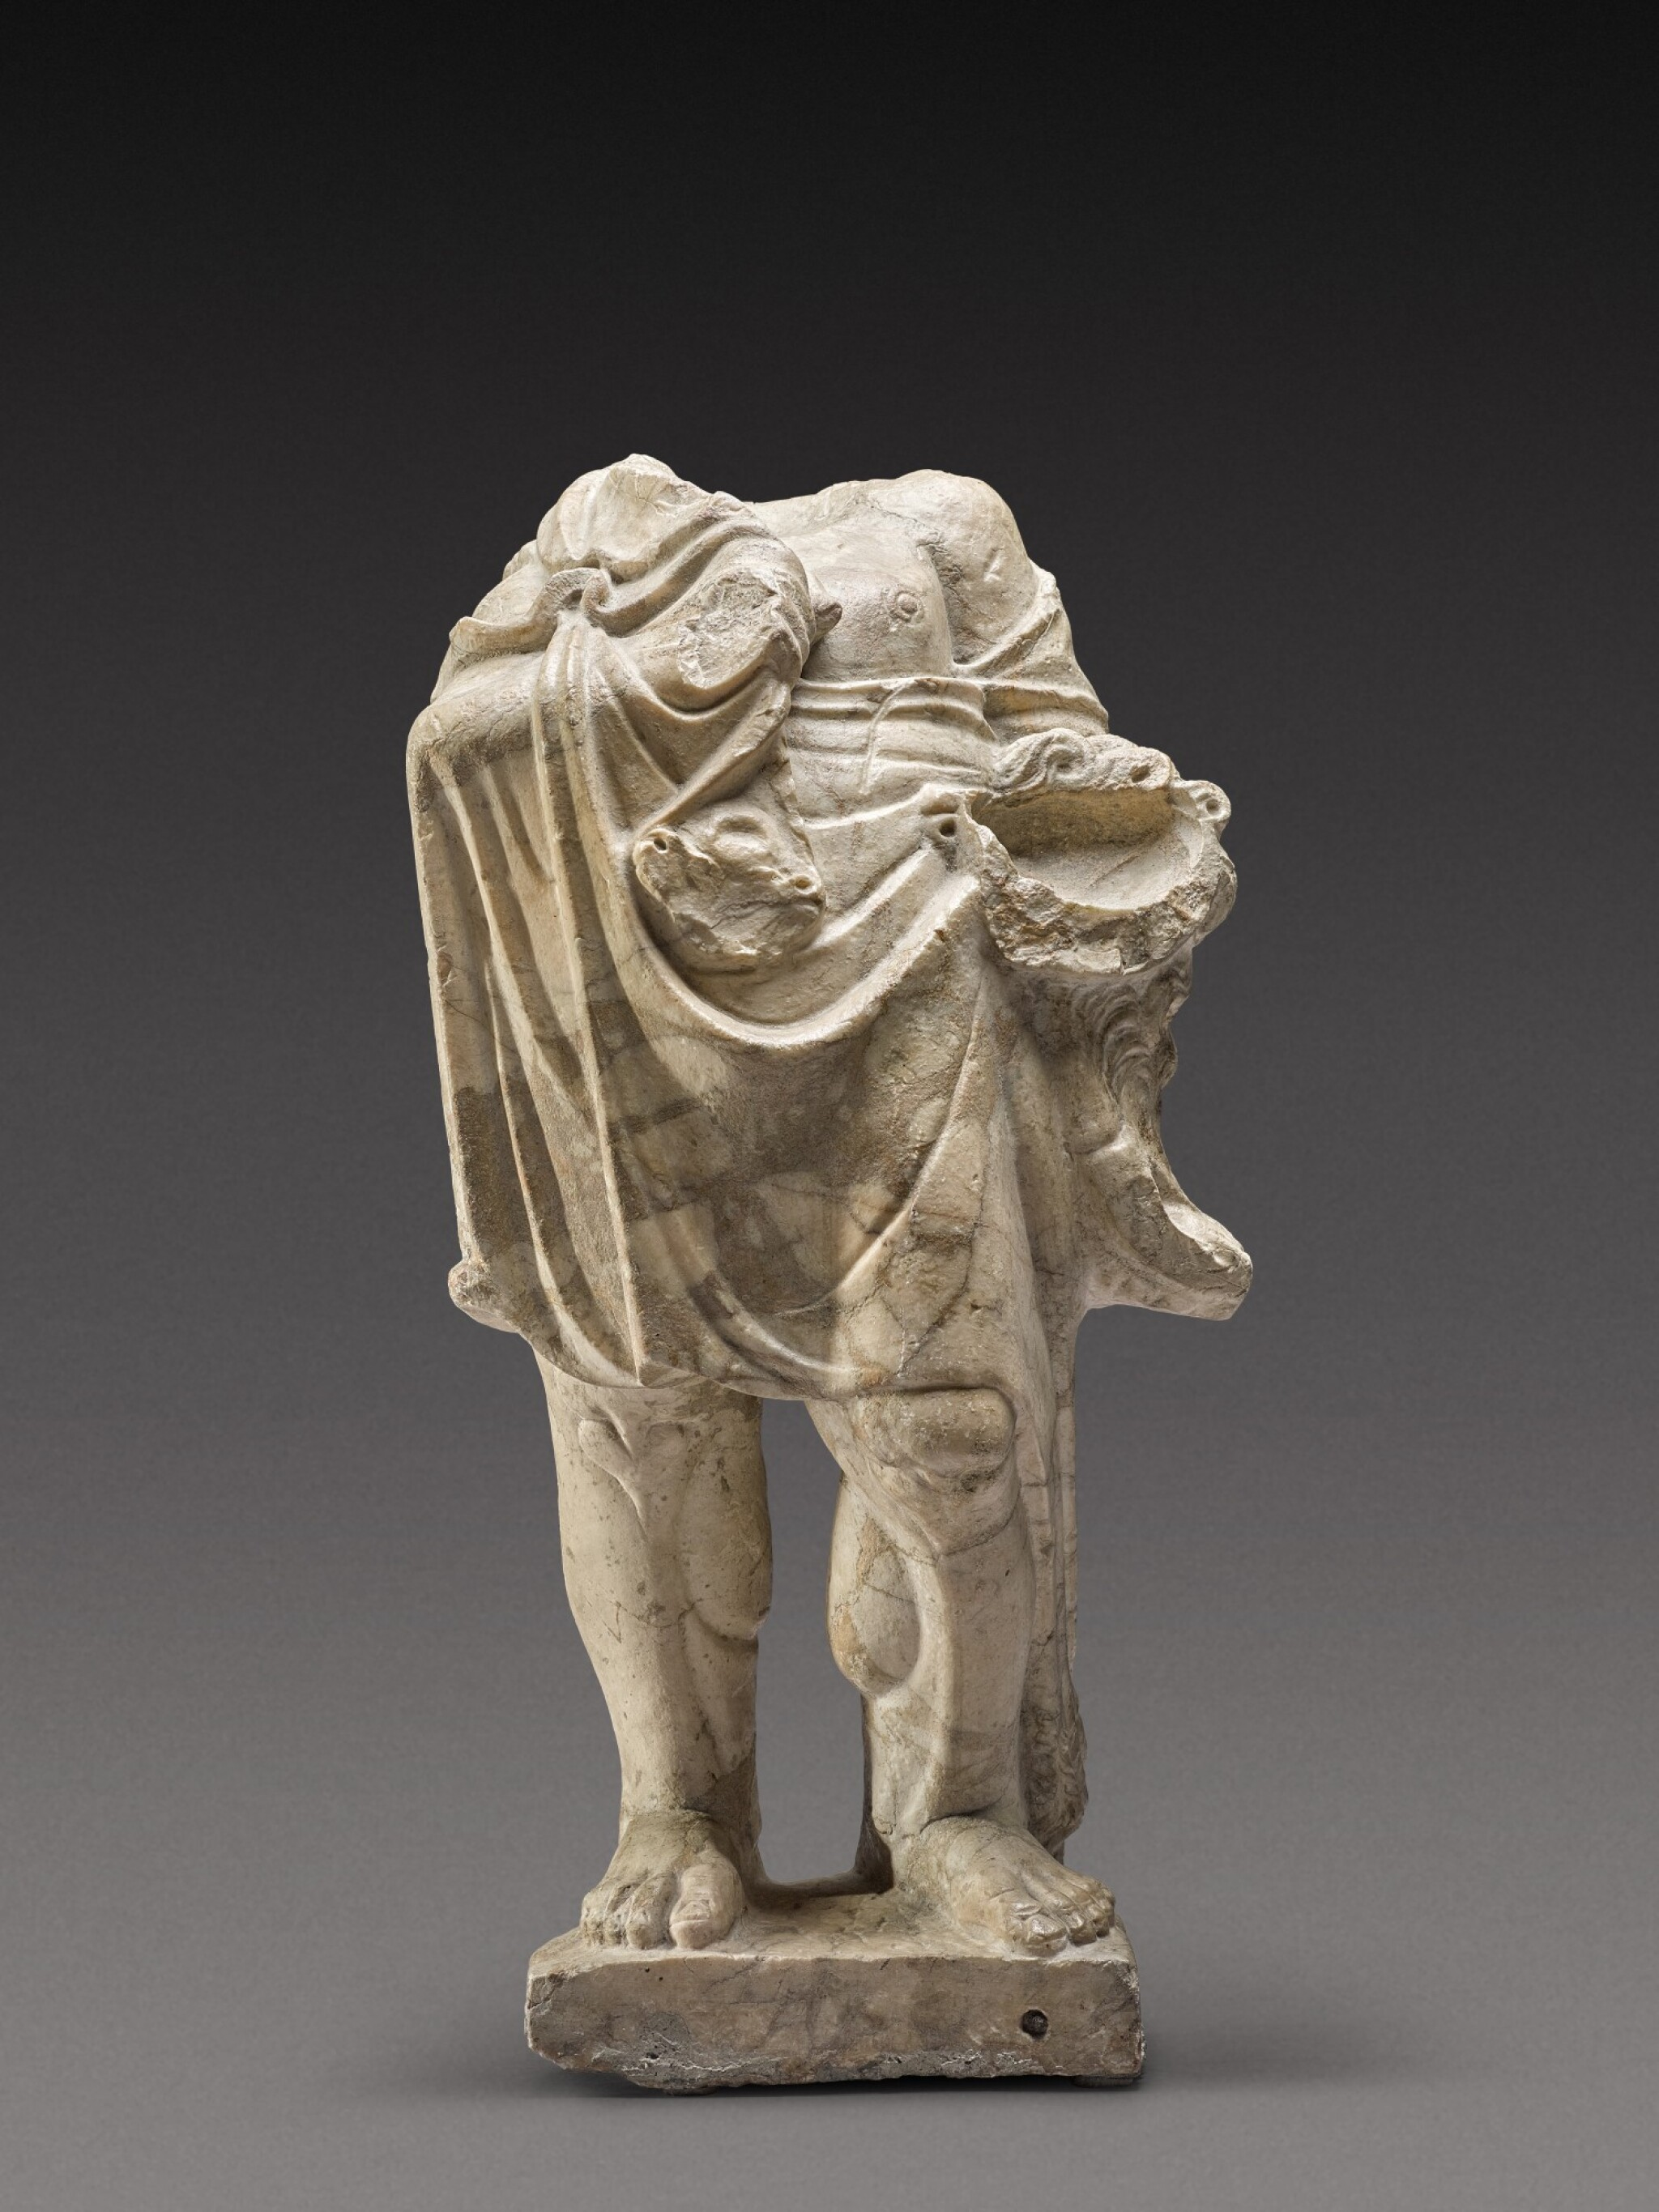 View 1 of Lot 78. A Roman Giallo Antico Marble Figure of Herakles, circa 2nd Century A.D..